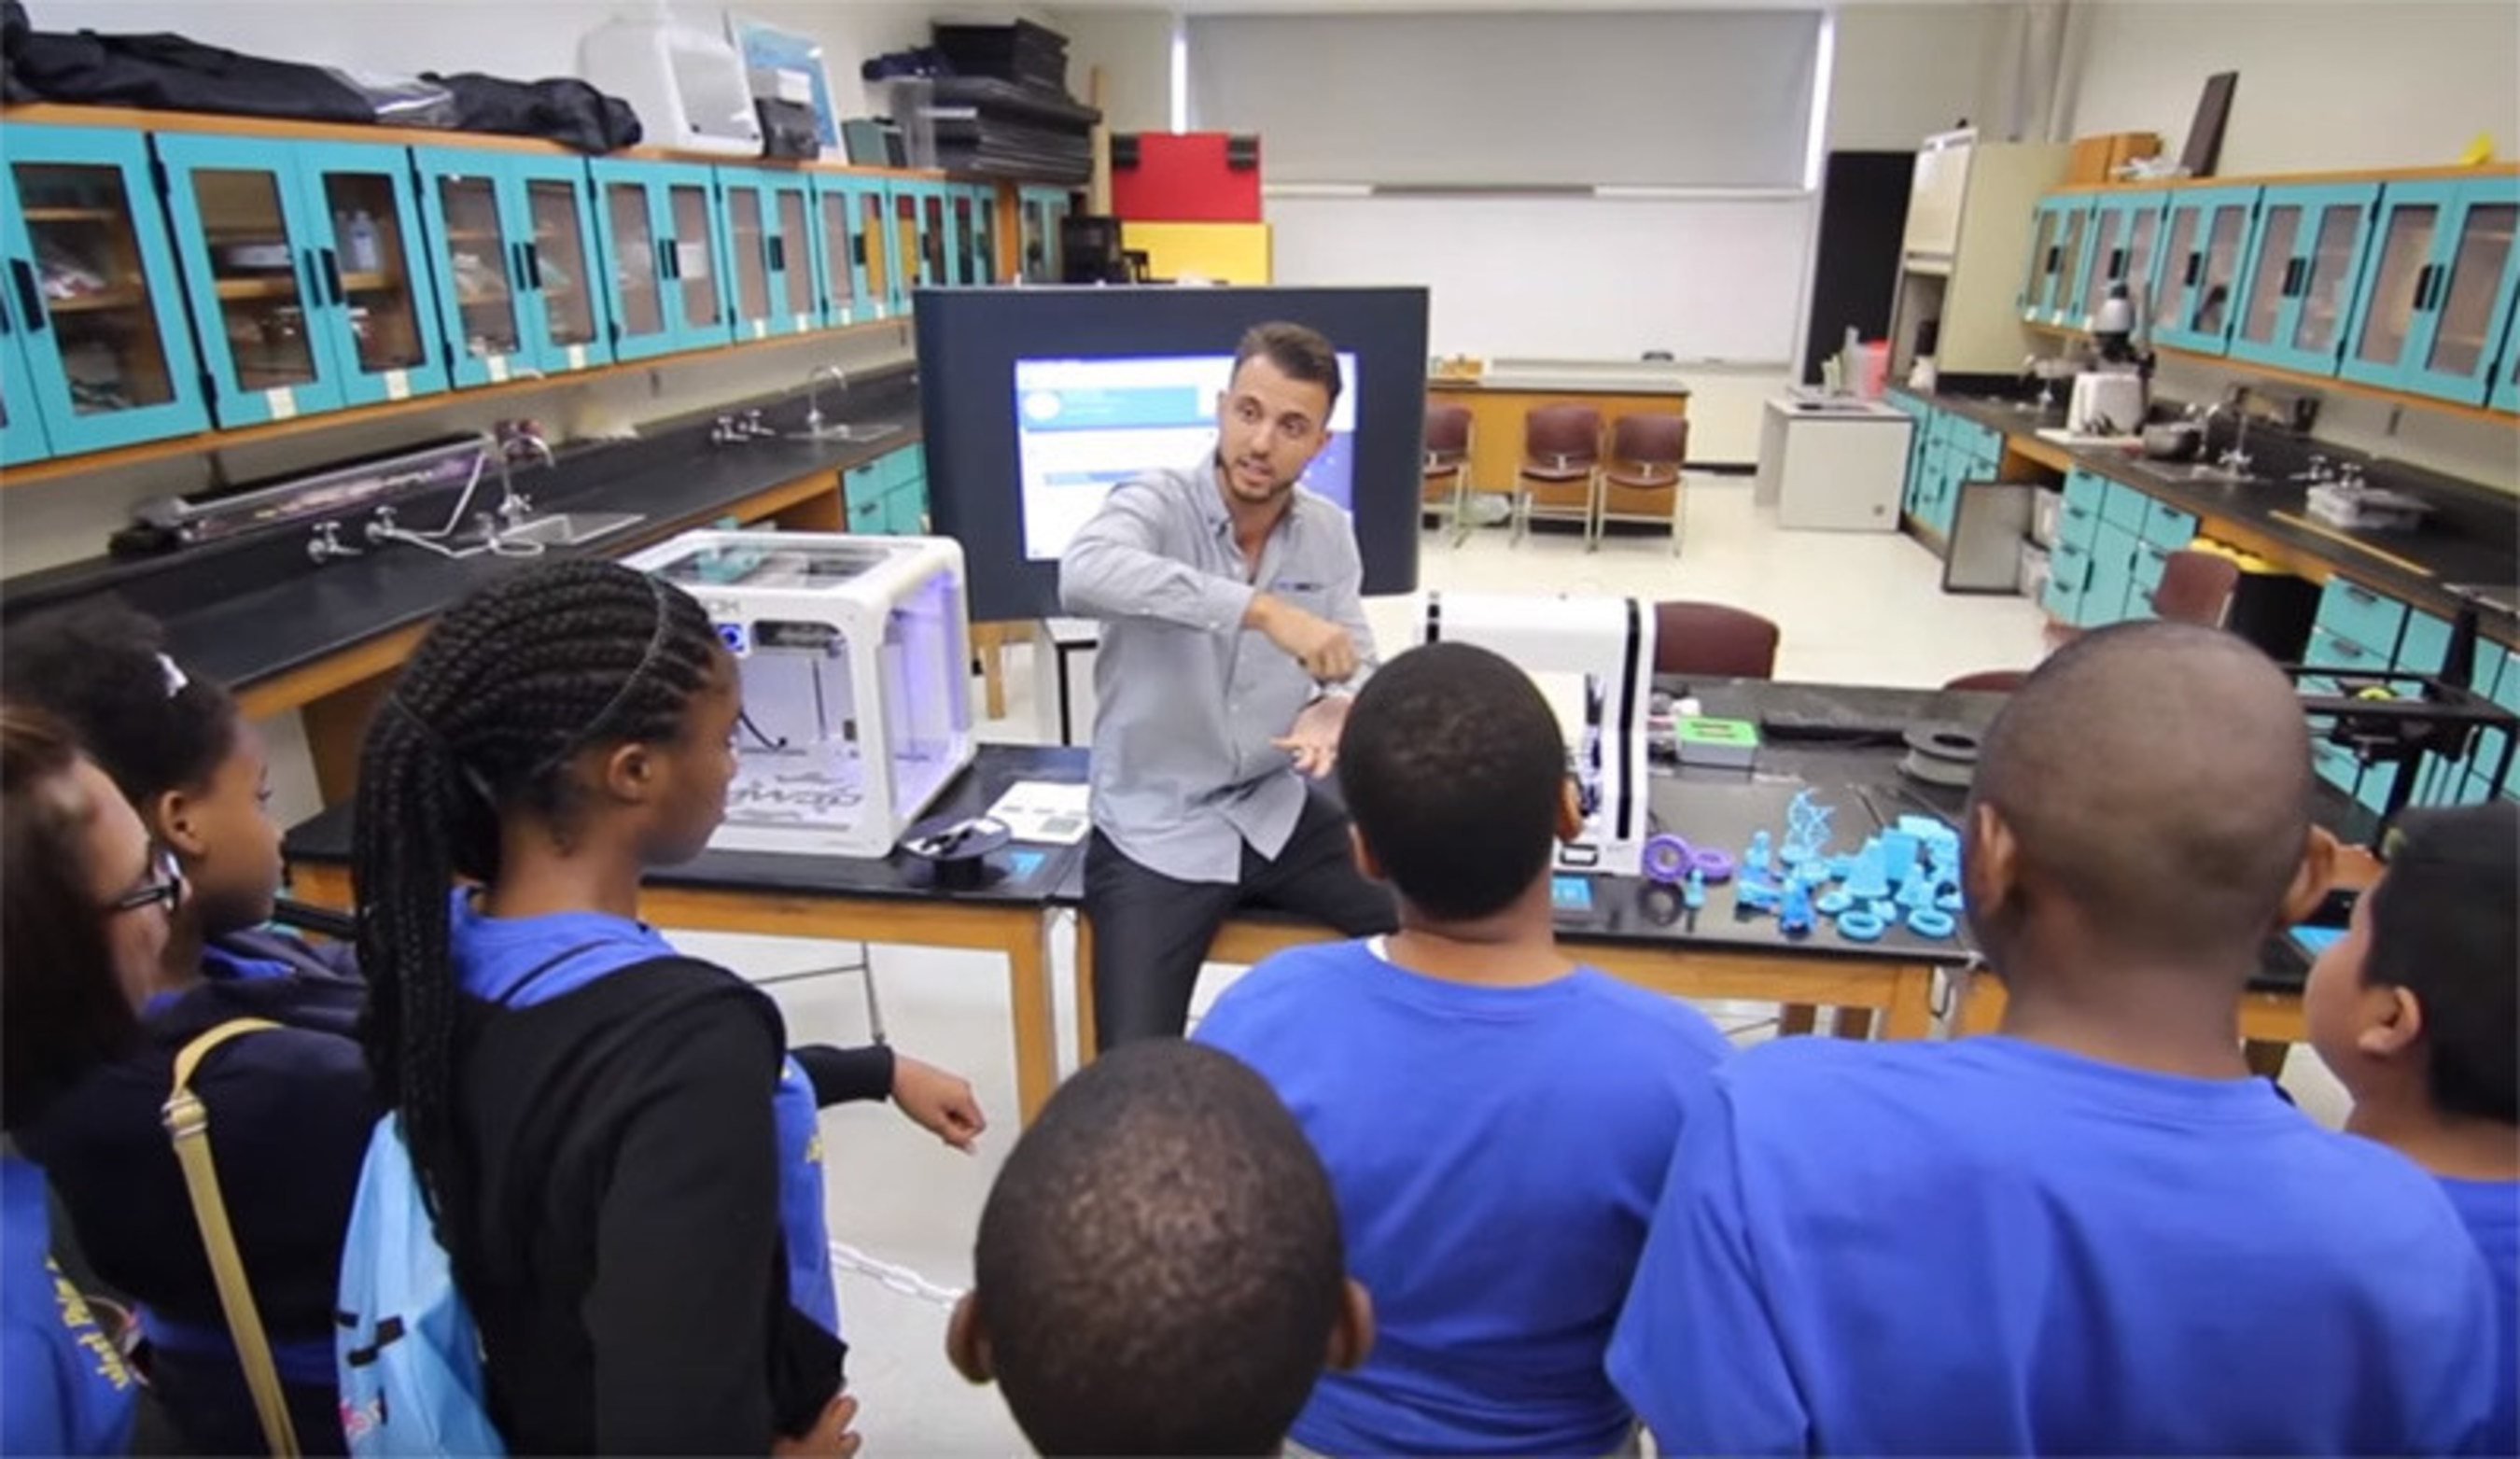 Startup Becoming 3D Partners with Ft. Lauderdale Museum of Discovery & Science to Build 3D Printing Lab